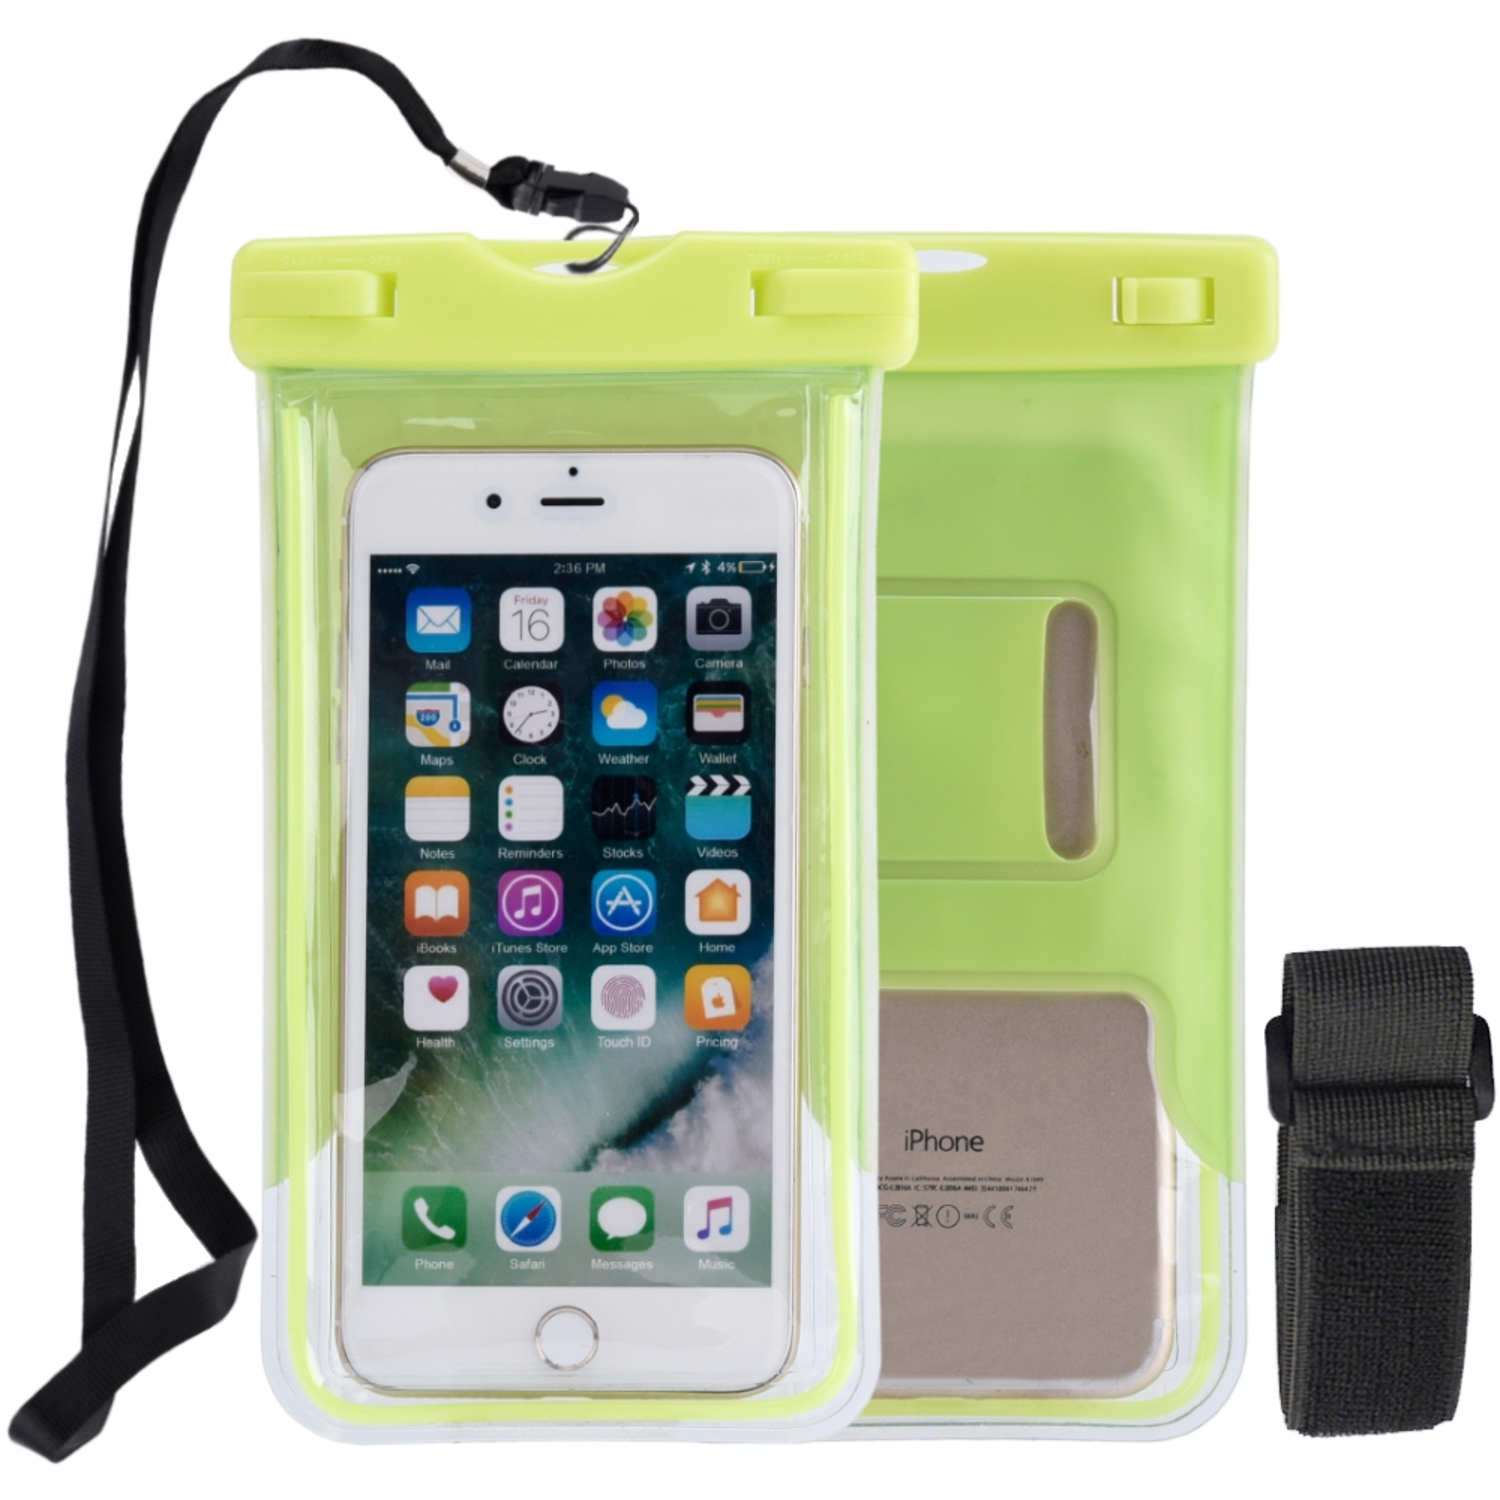 Insten Universal Underwater Sport Waterproof Pouch Glows In The Dark Dry Bag Case with Armband Neck Strap for Cell Phone